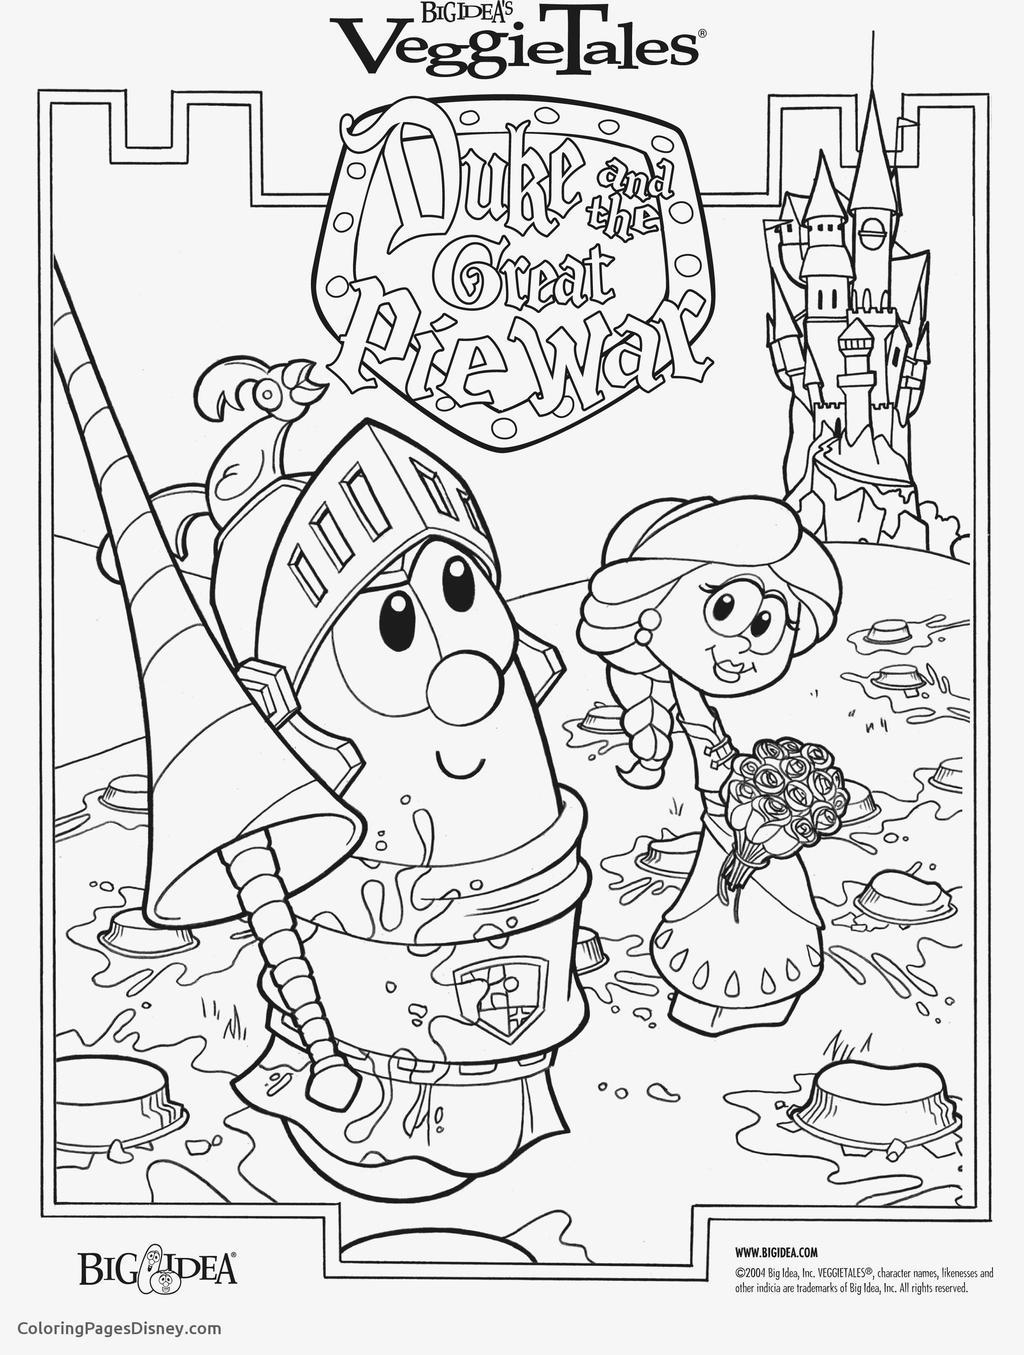 Free The Good Samaritan Coloring Pages tally Spies printable